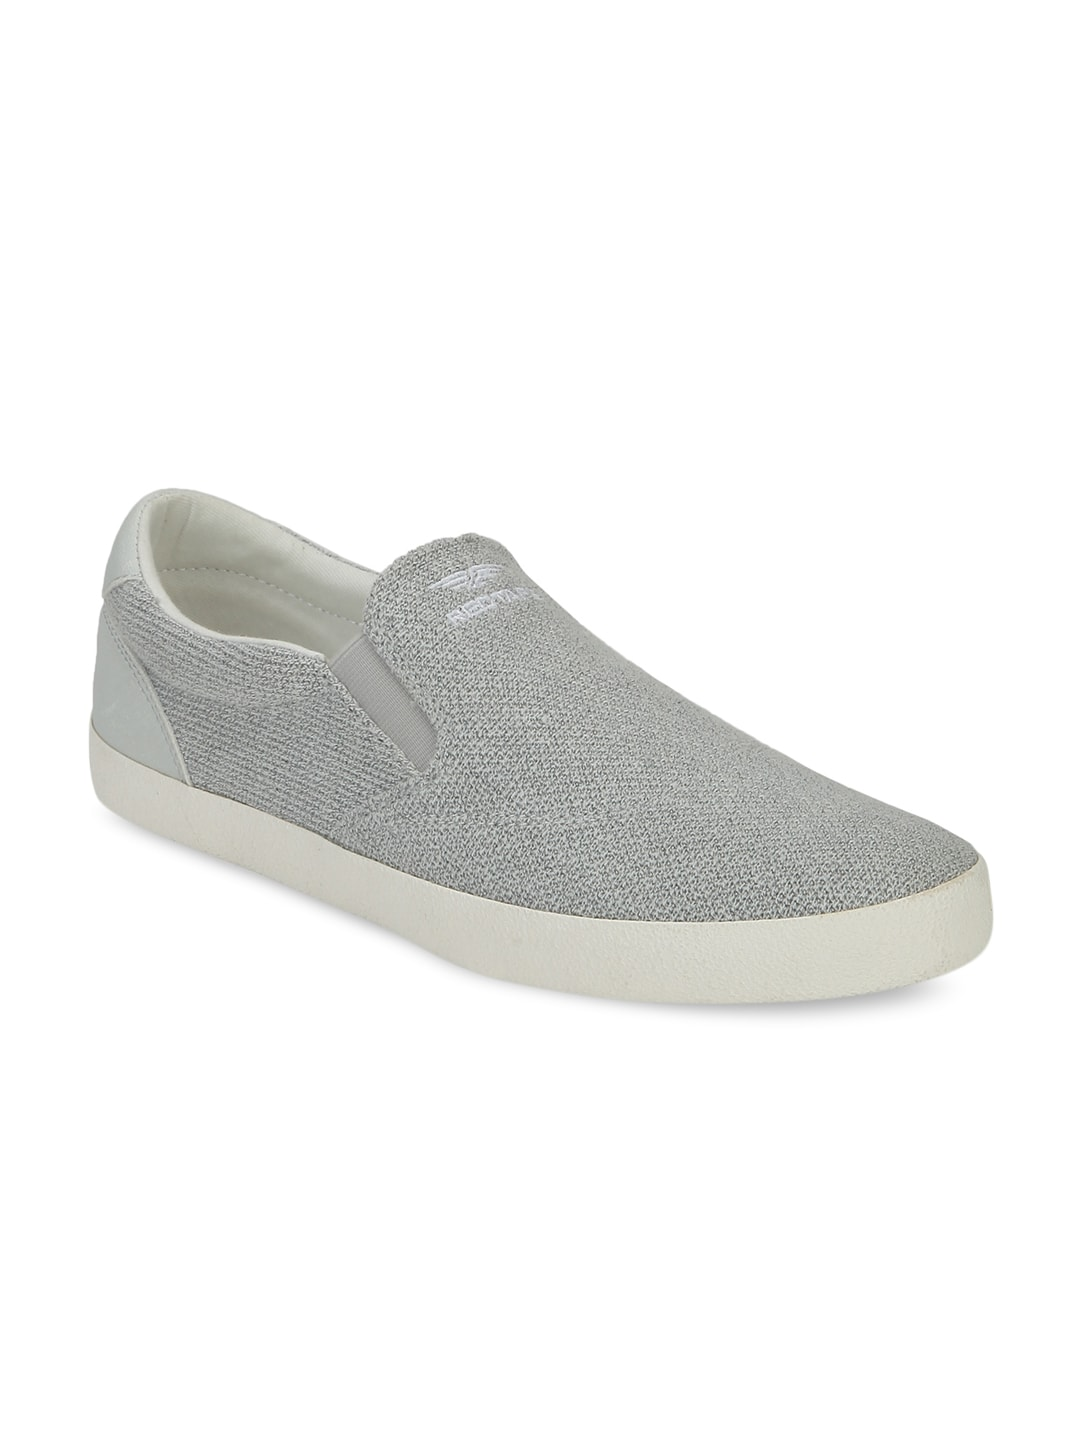 Red Tape Men Grey Slip-On Sneakers image